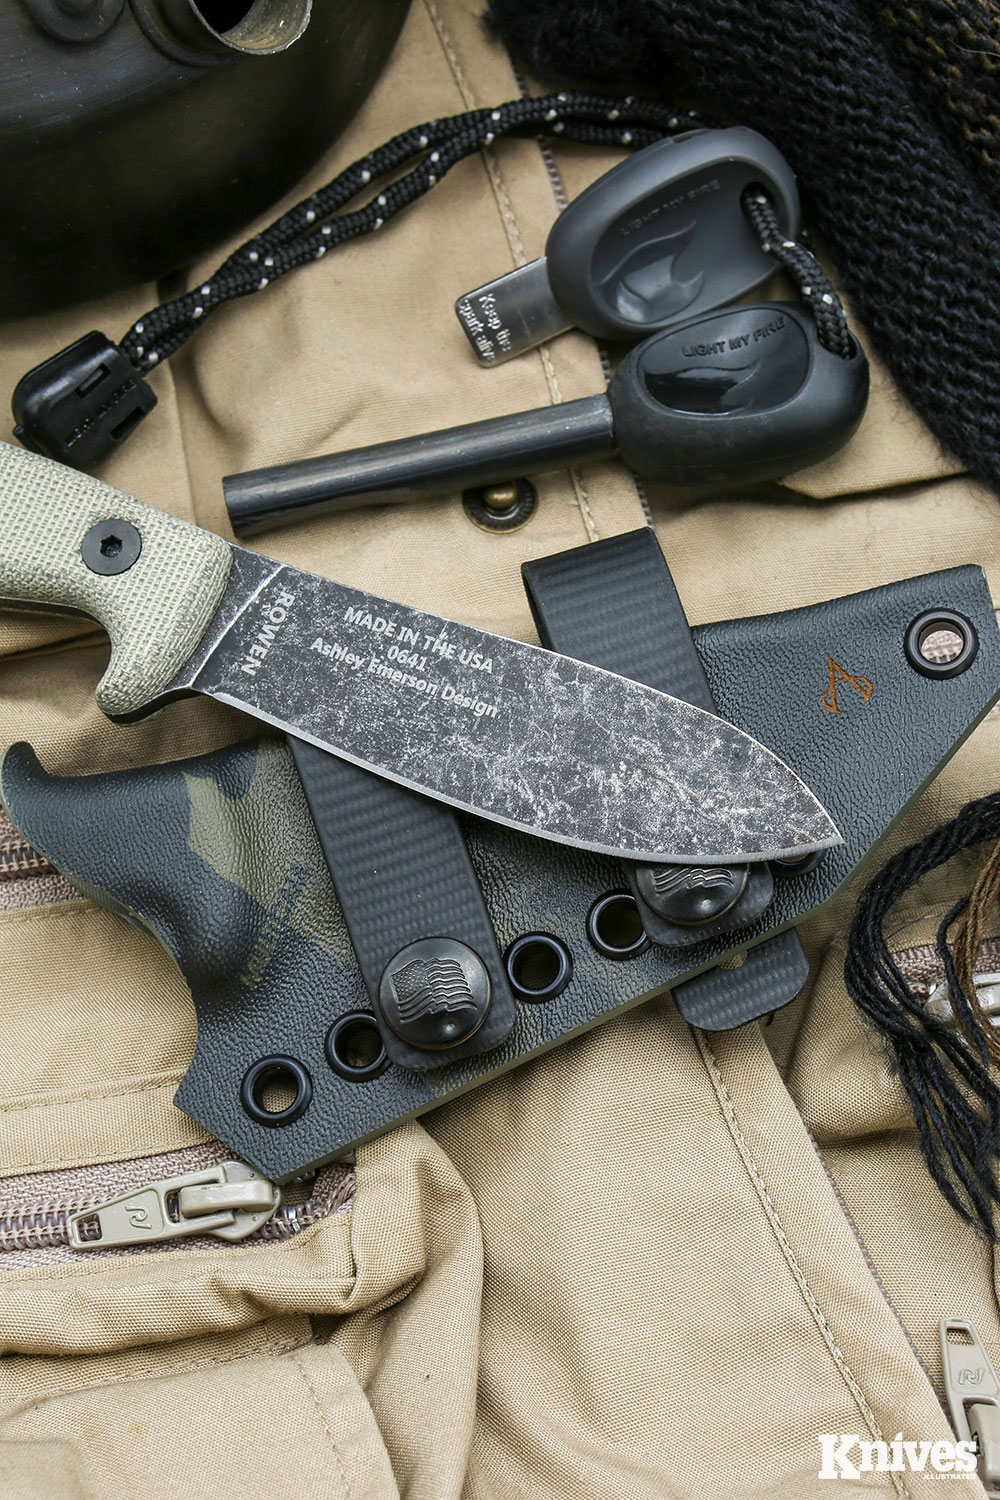 ESEE Knives has teamed up with Armatus Carry (Architect sheath model pictured)